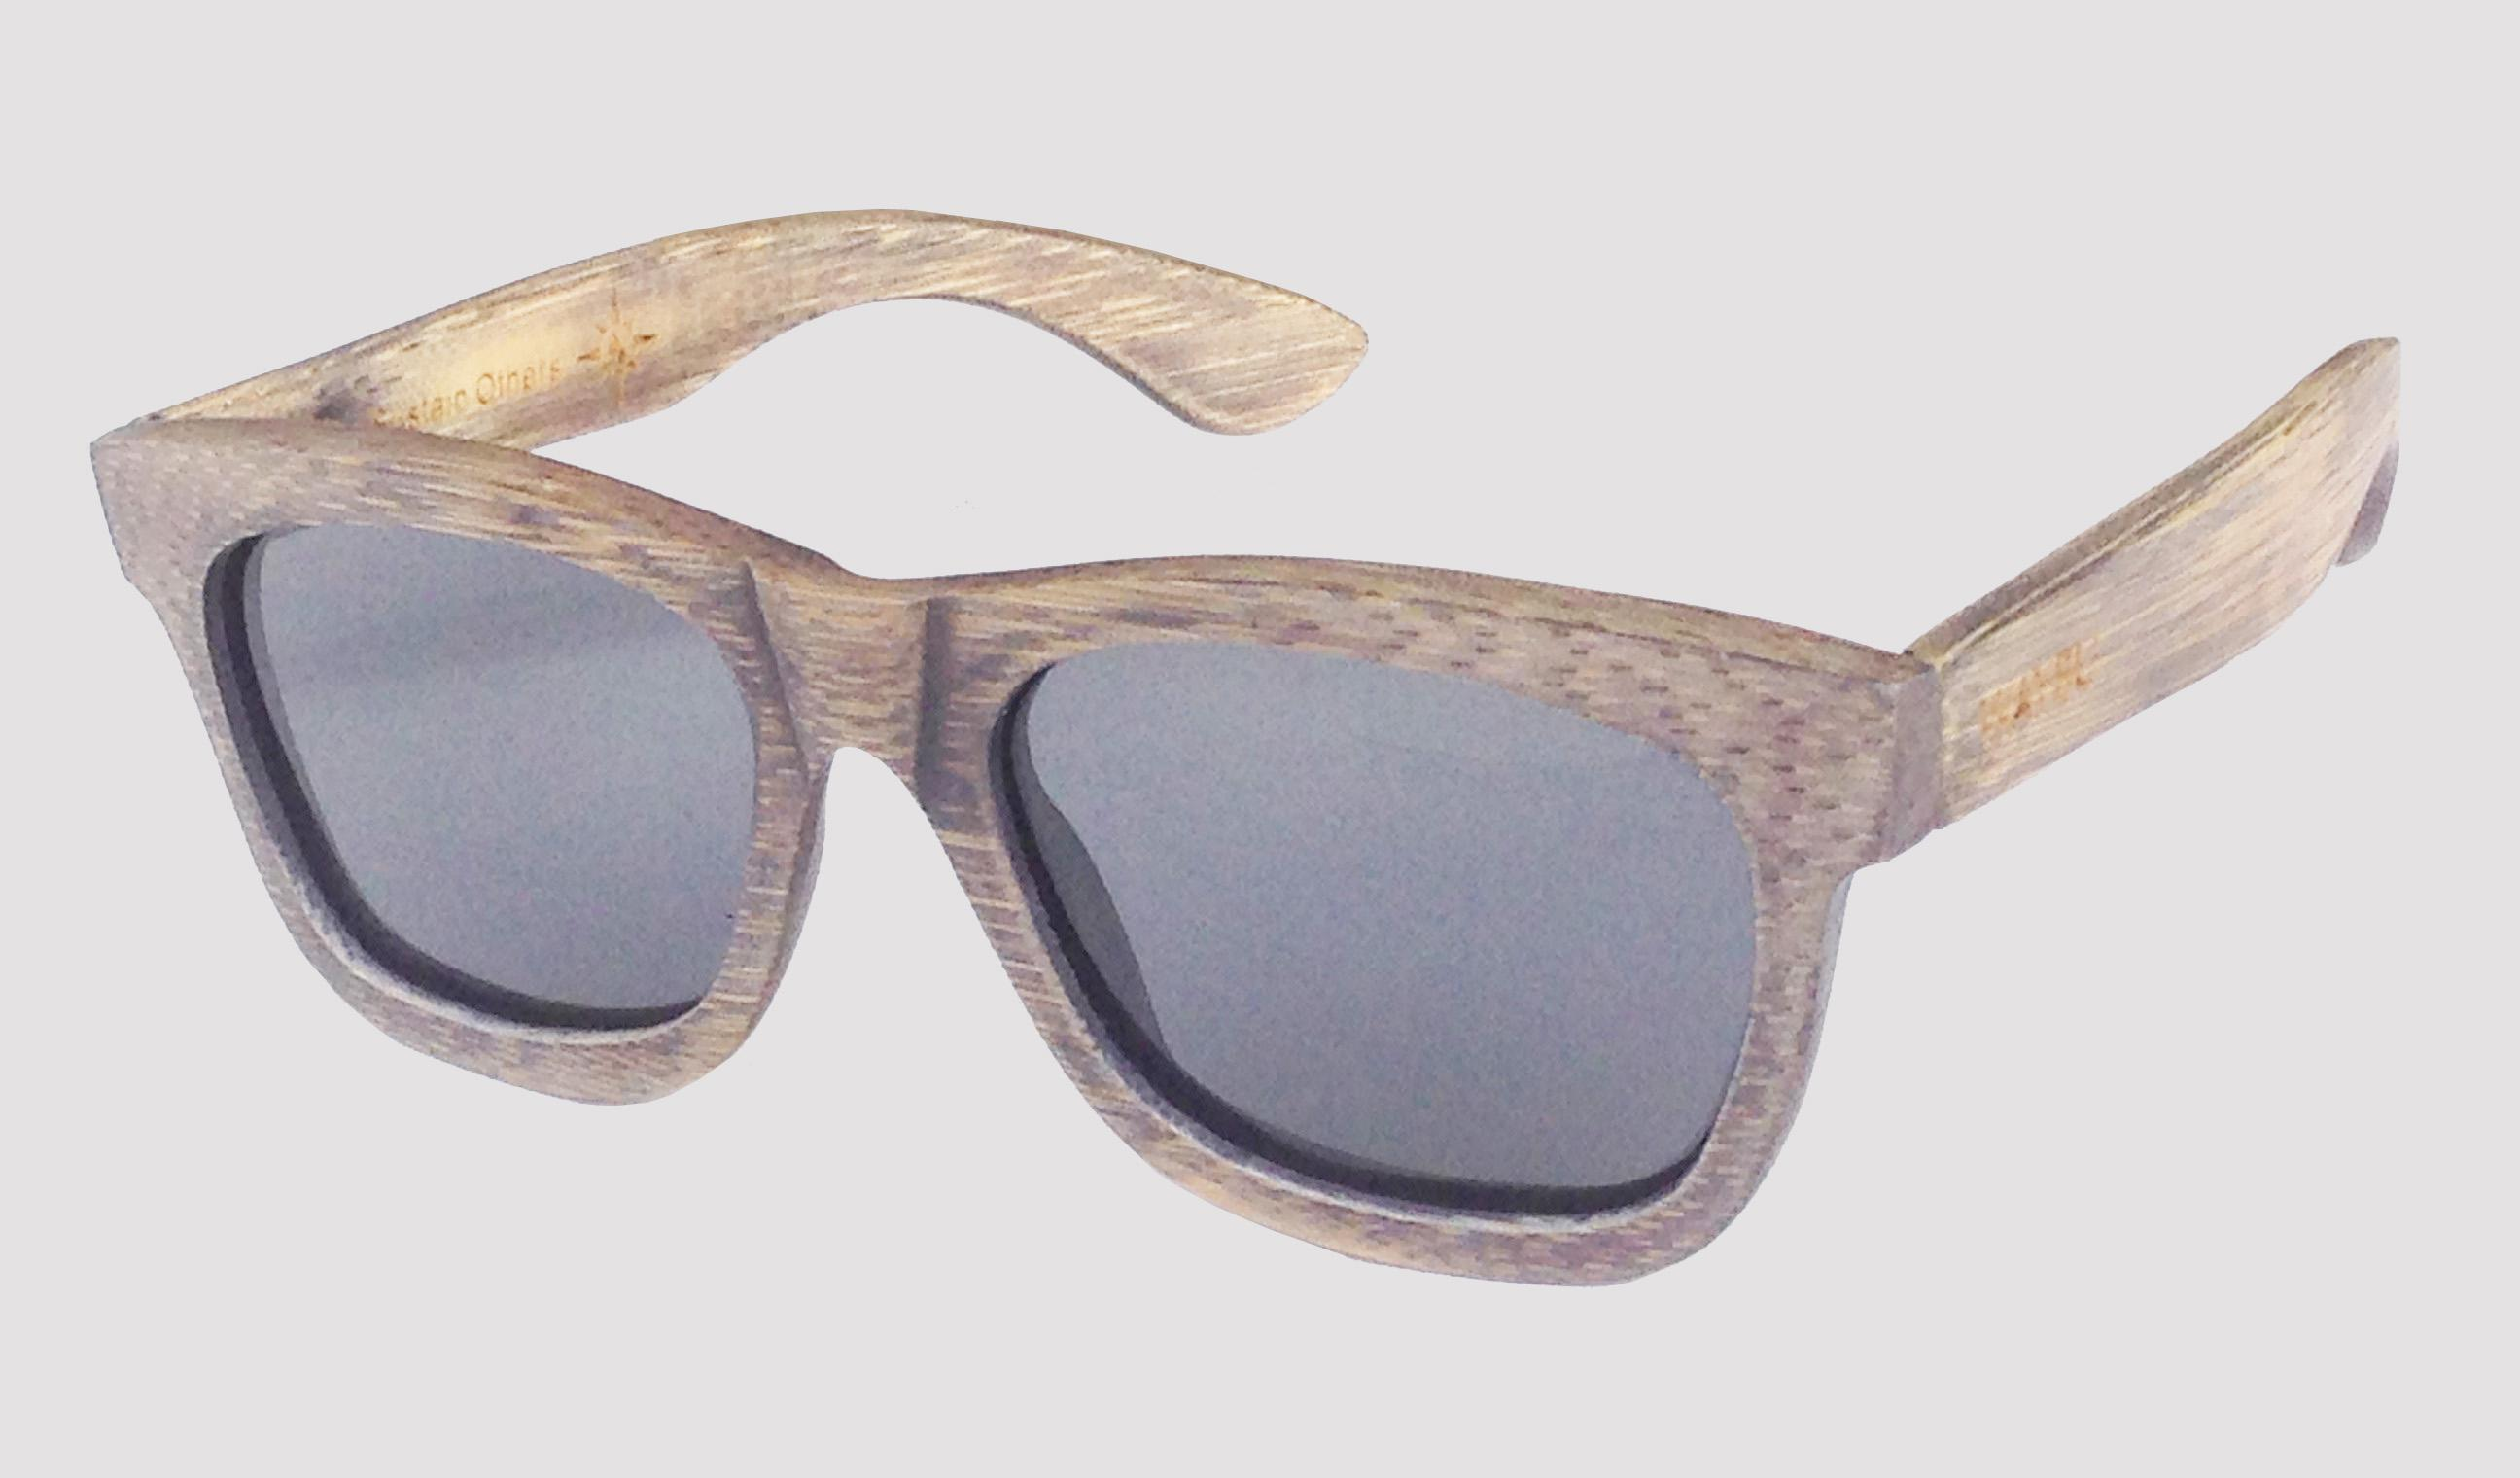 87fddf1297 Cool Polarized Gray Lens Antique Finish Bamboo Sunglasses on Sale Drop  Shipping Bamboo Sunglasses Popular Sunglasses Drop Shipping Sunglasses  Online with ...